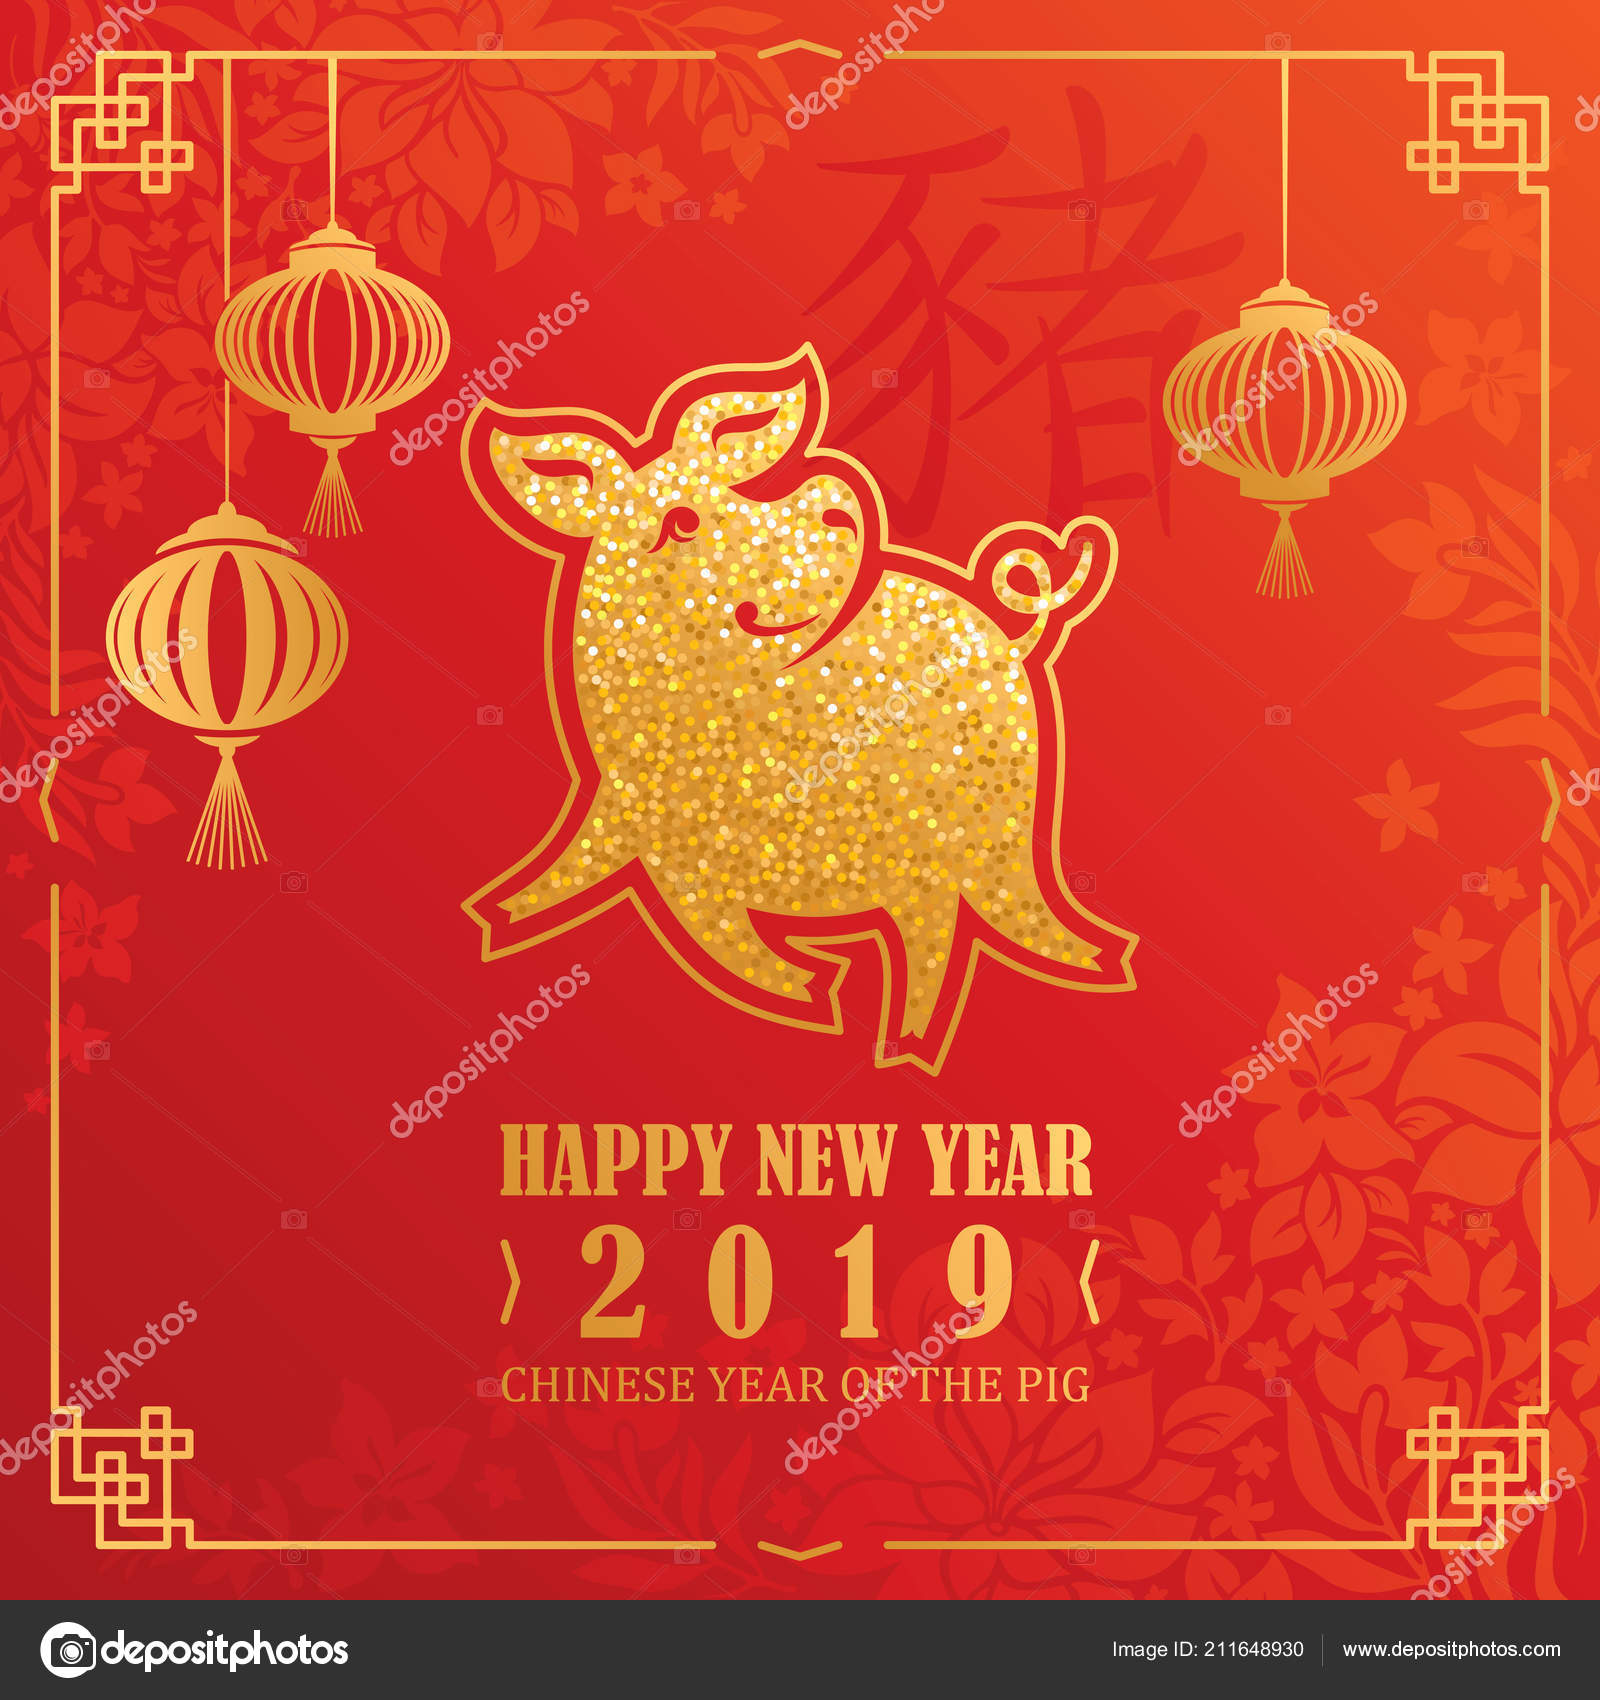 Best chinese new year sayings in english image collection cute boy and girl 2019 chinese new year greeting card year of the pig vector illustration m4hsunfo